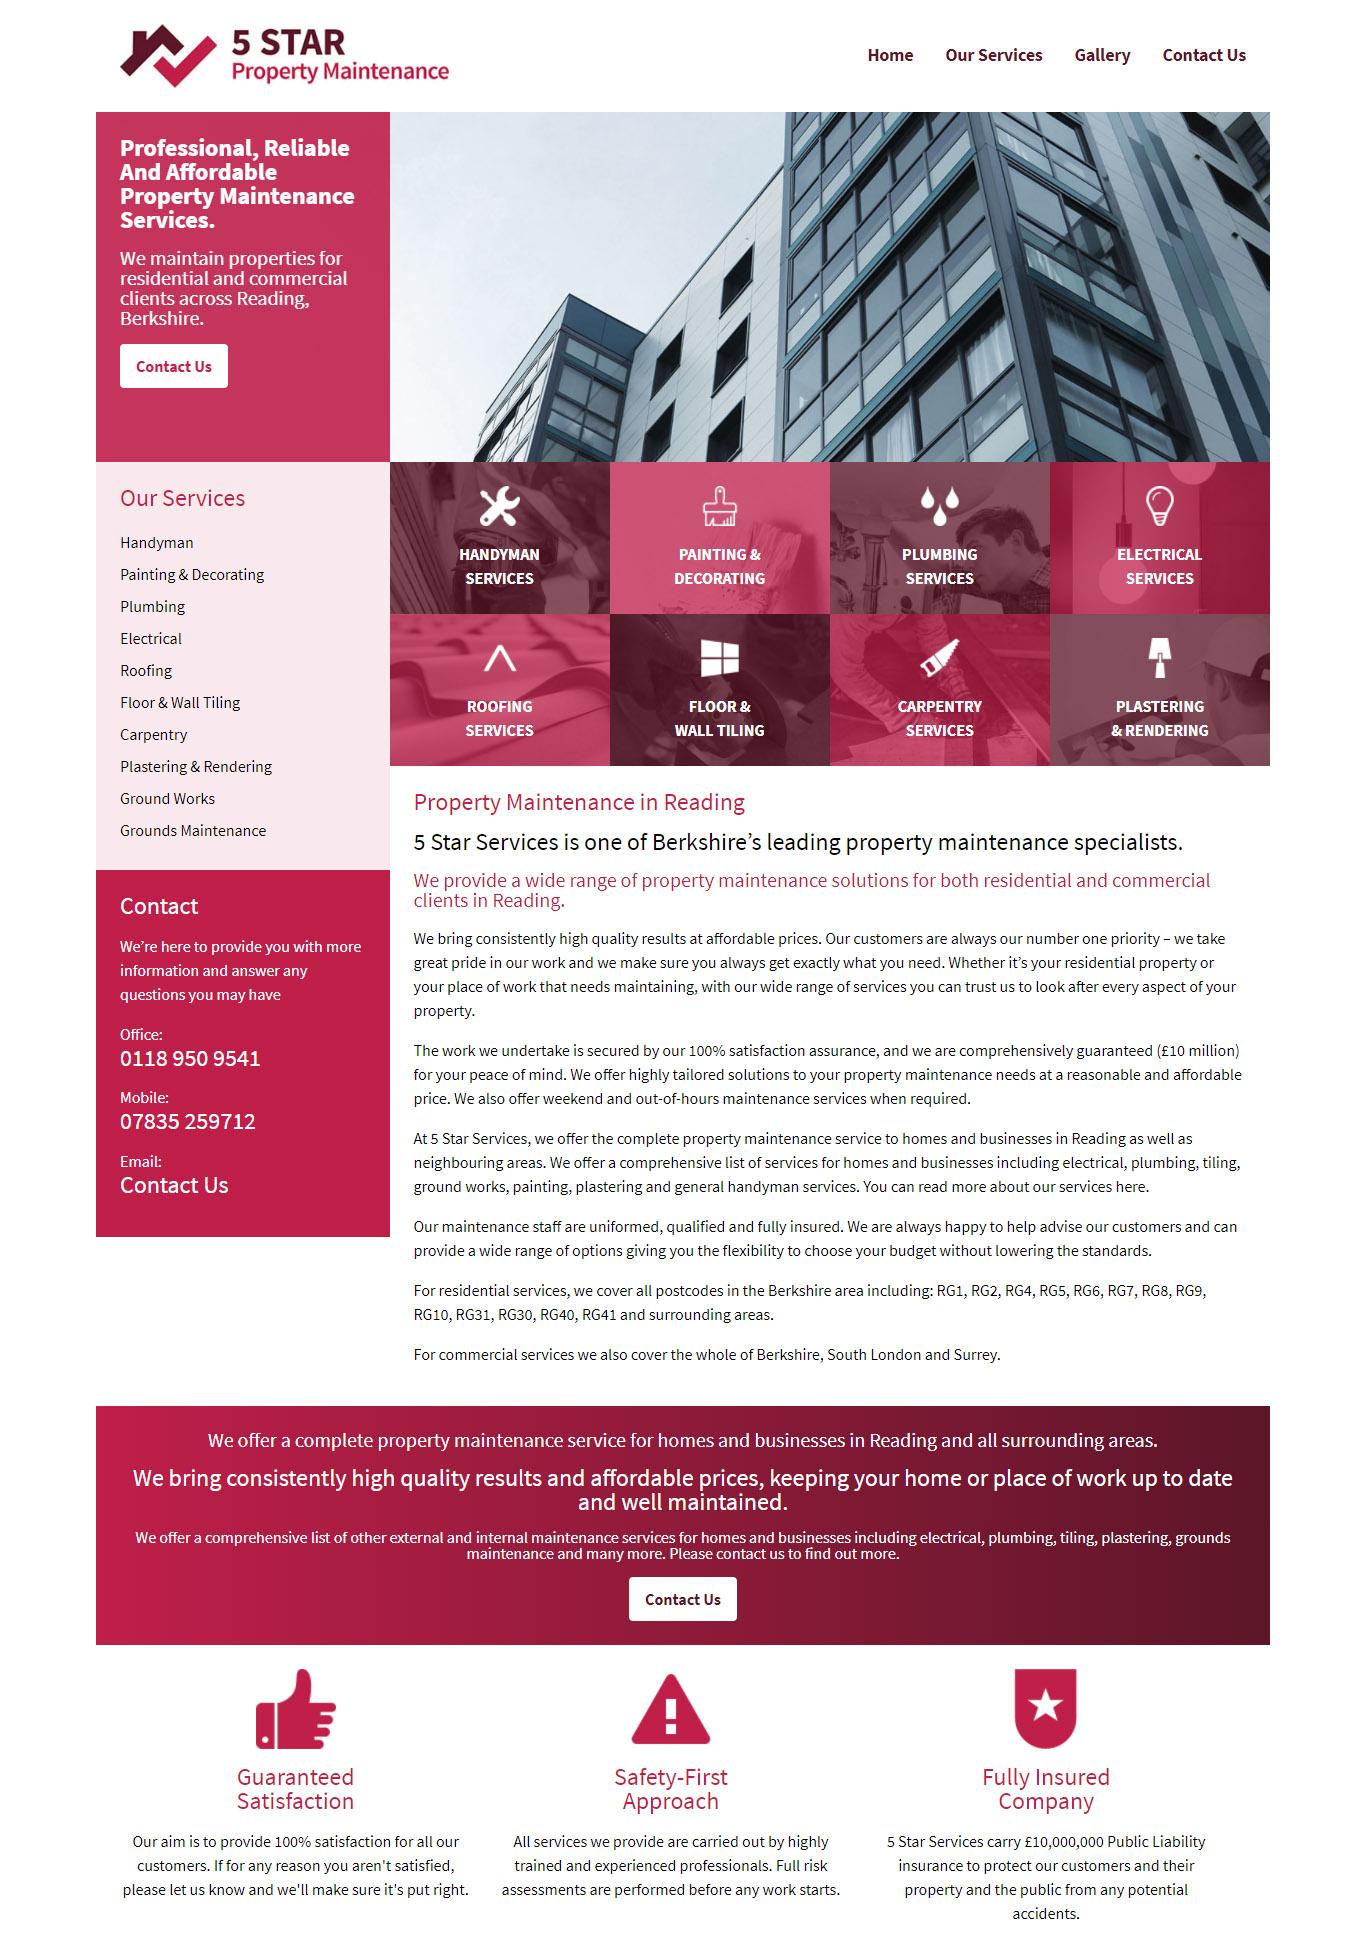 Bespoke Website For Property Services Company In Reading